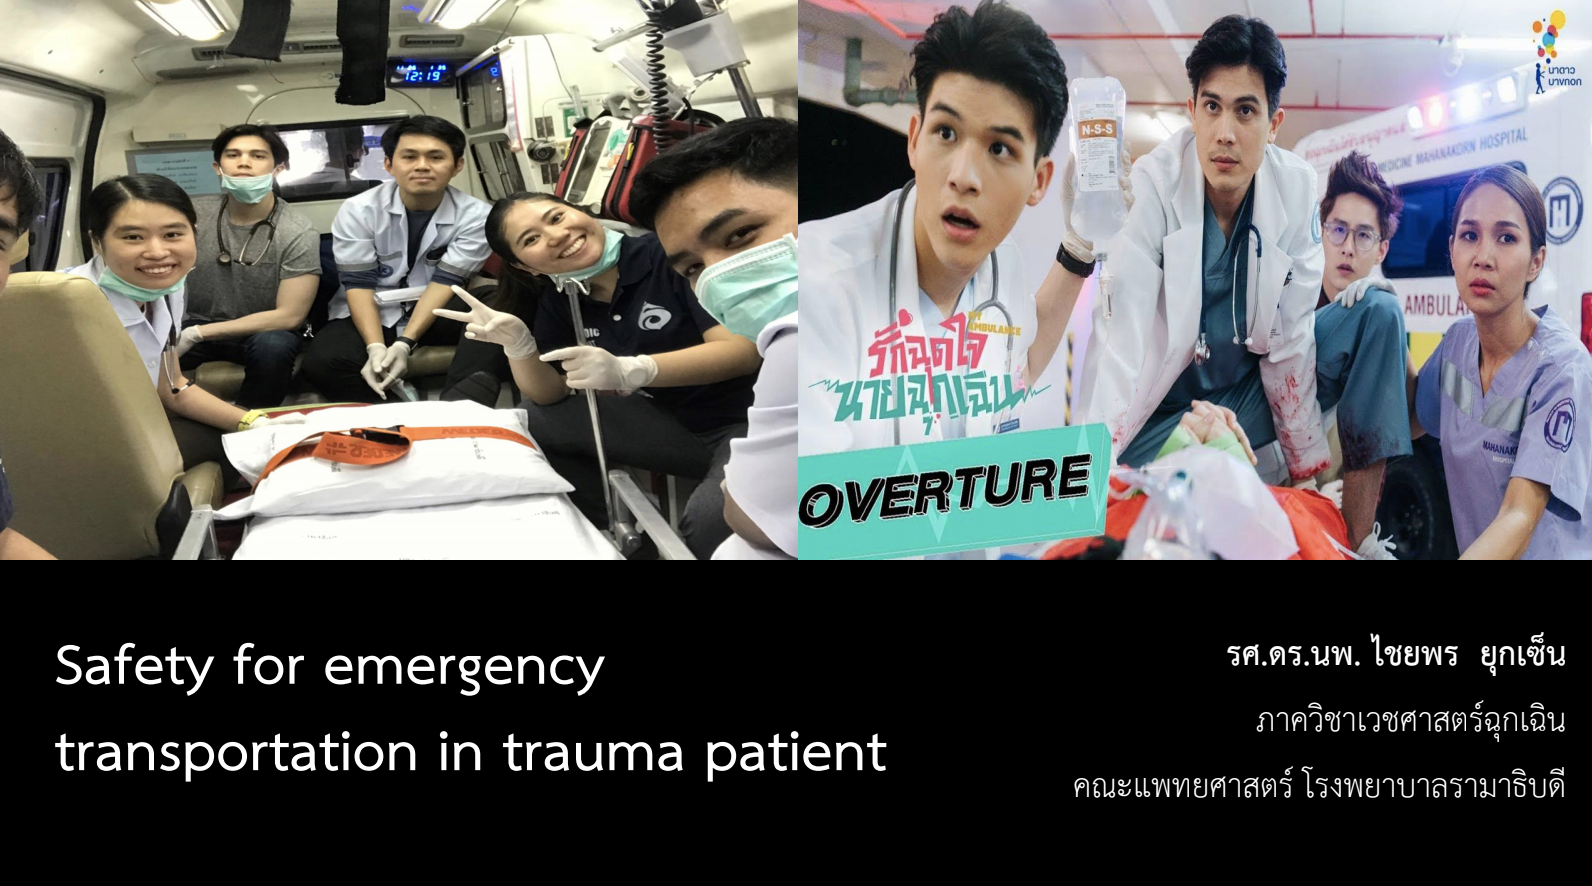 Safety for Emergency Transportation in Trauma Patient